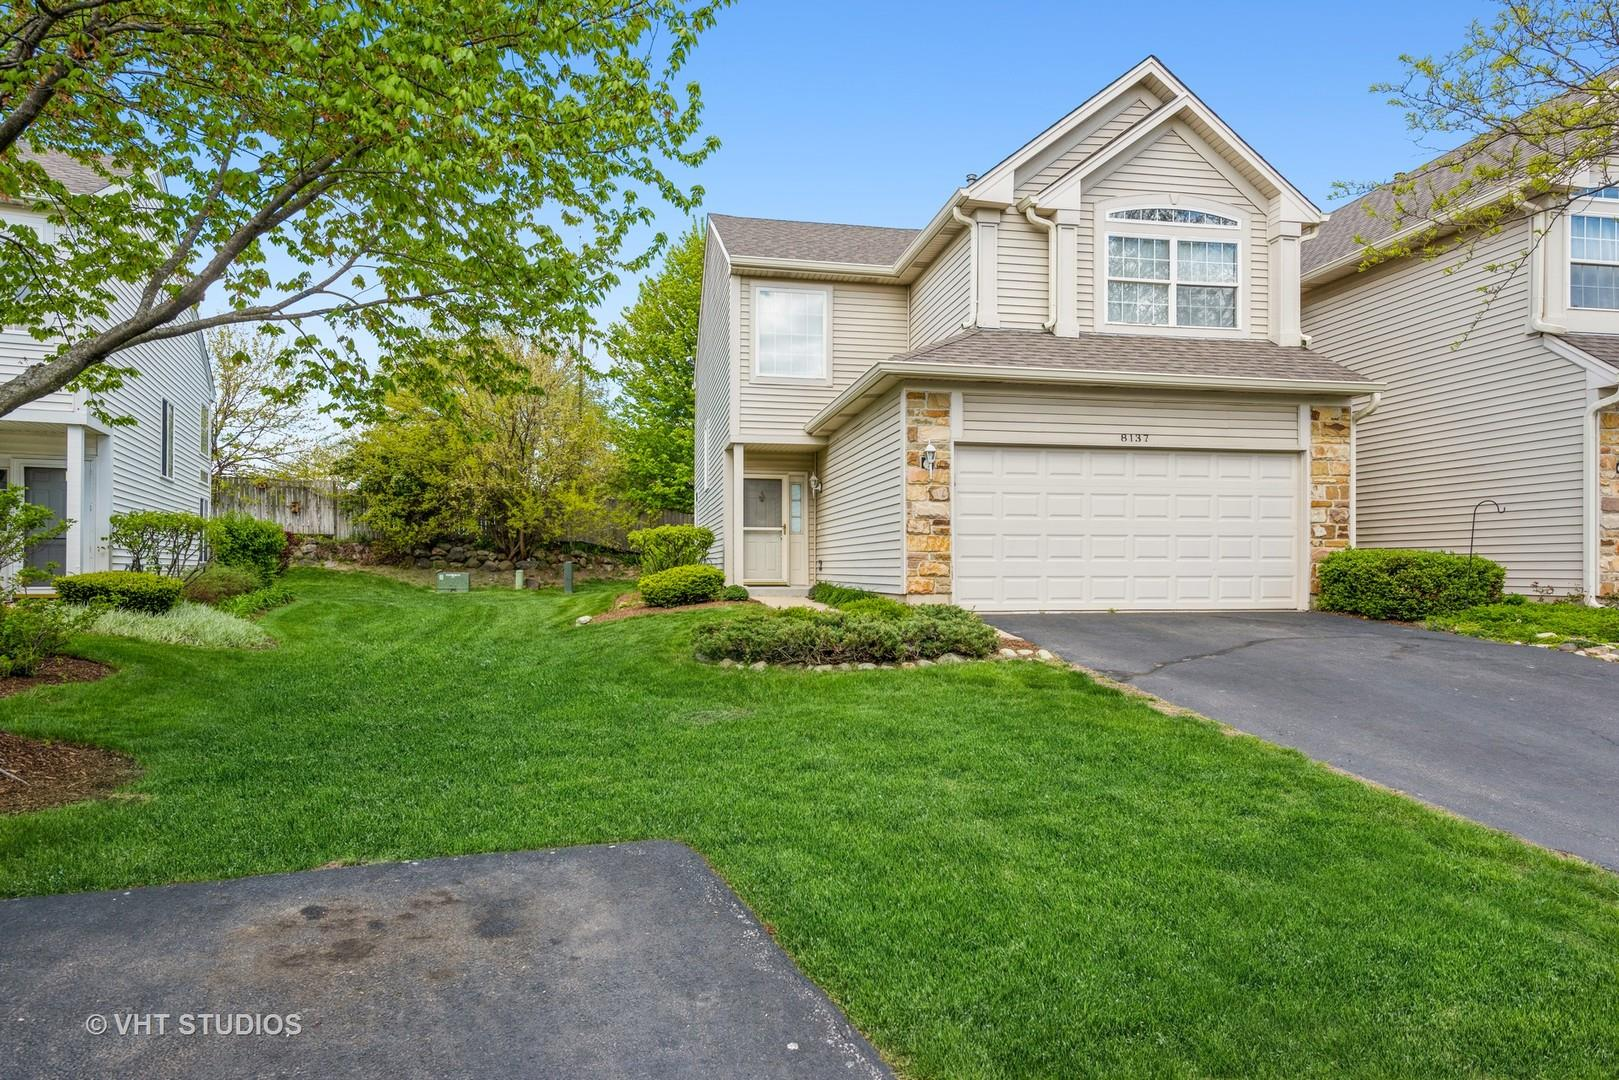 8137 Sierra Woods Lane, Carpentersville, IL 60110 - #: 11085476